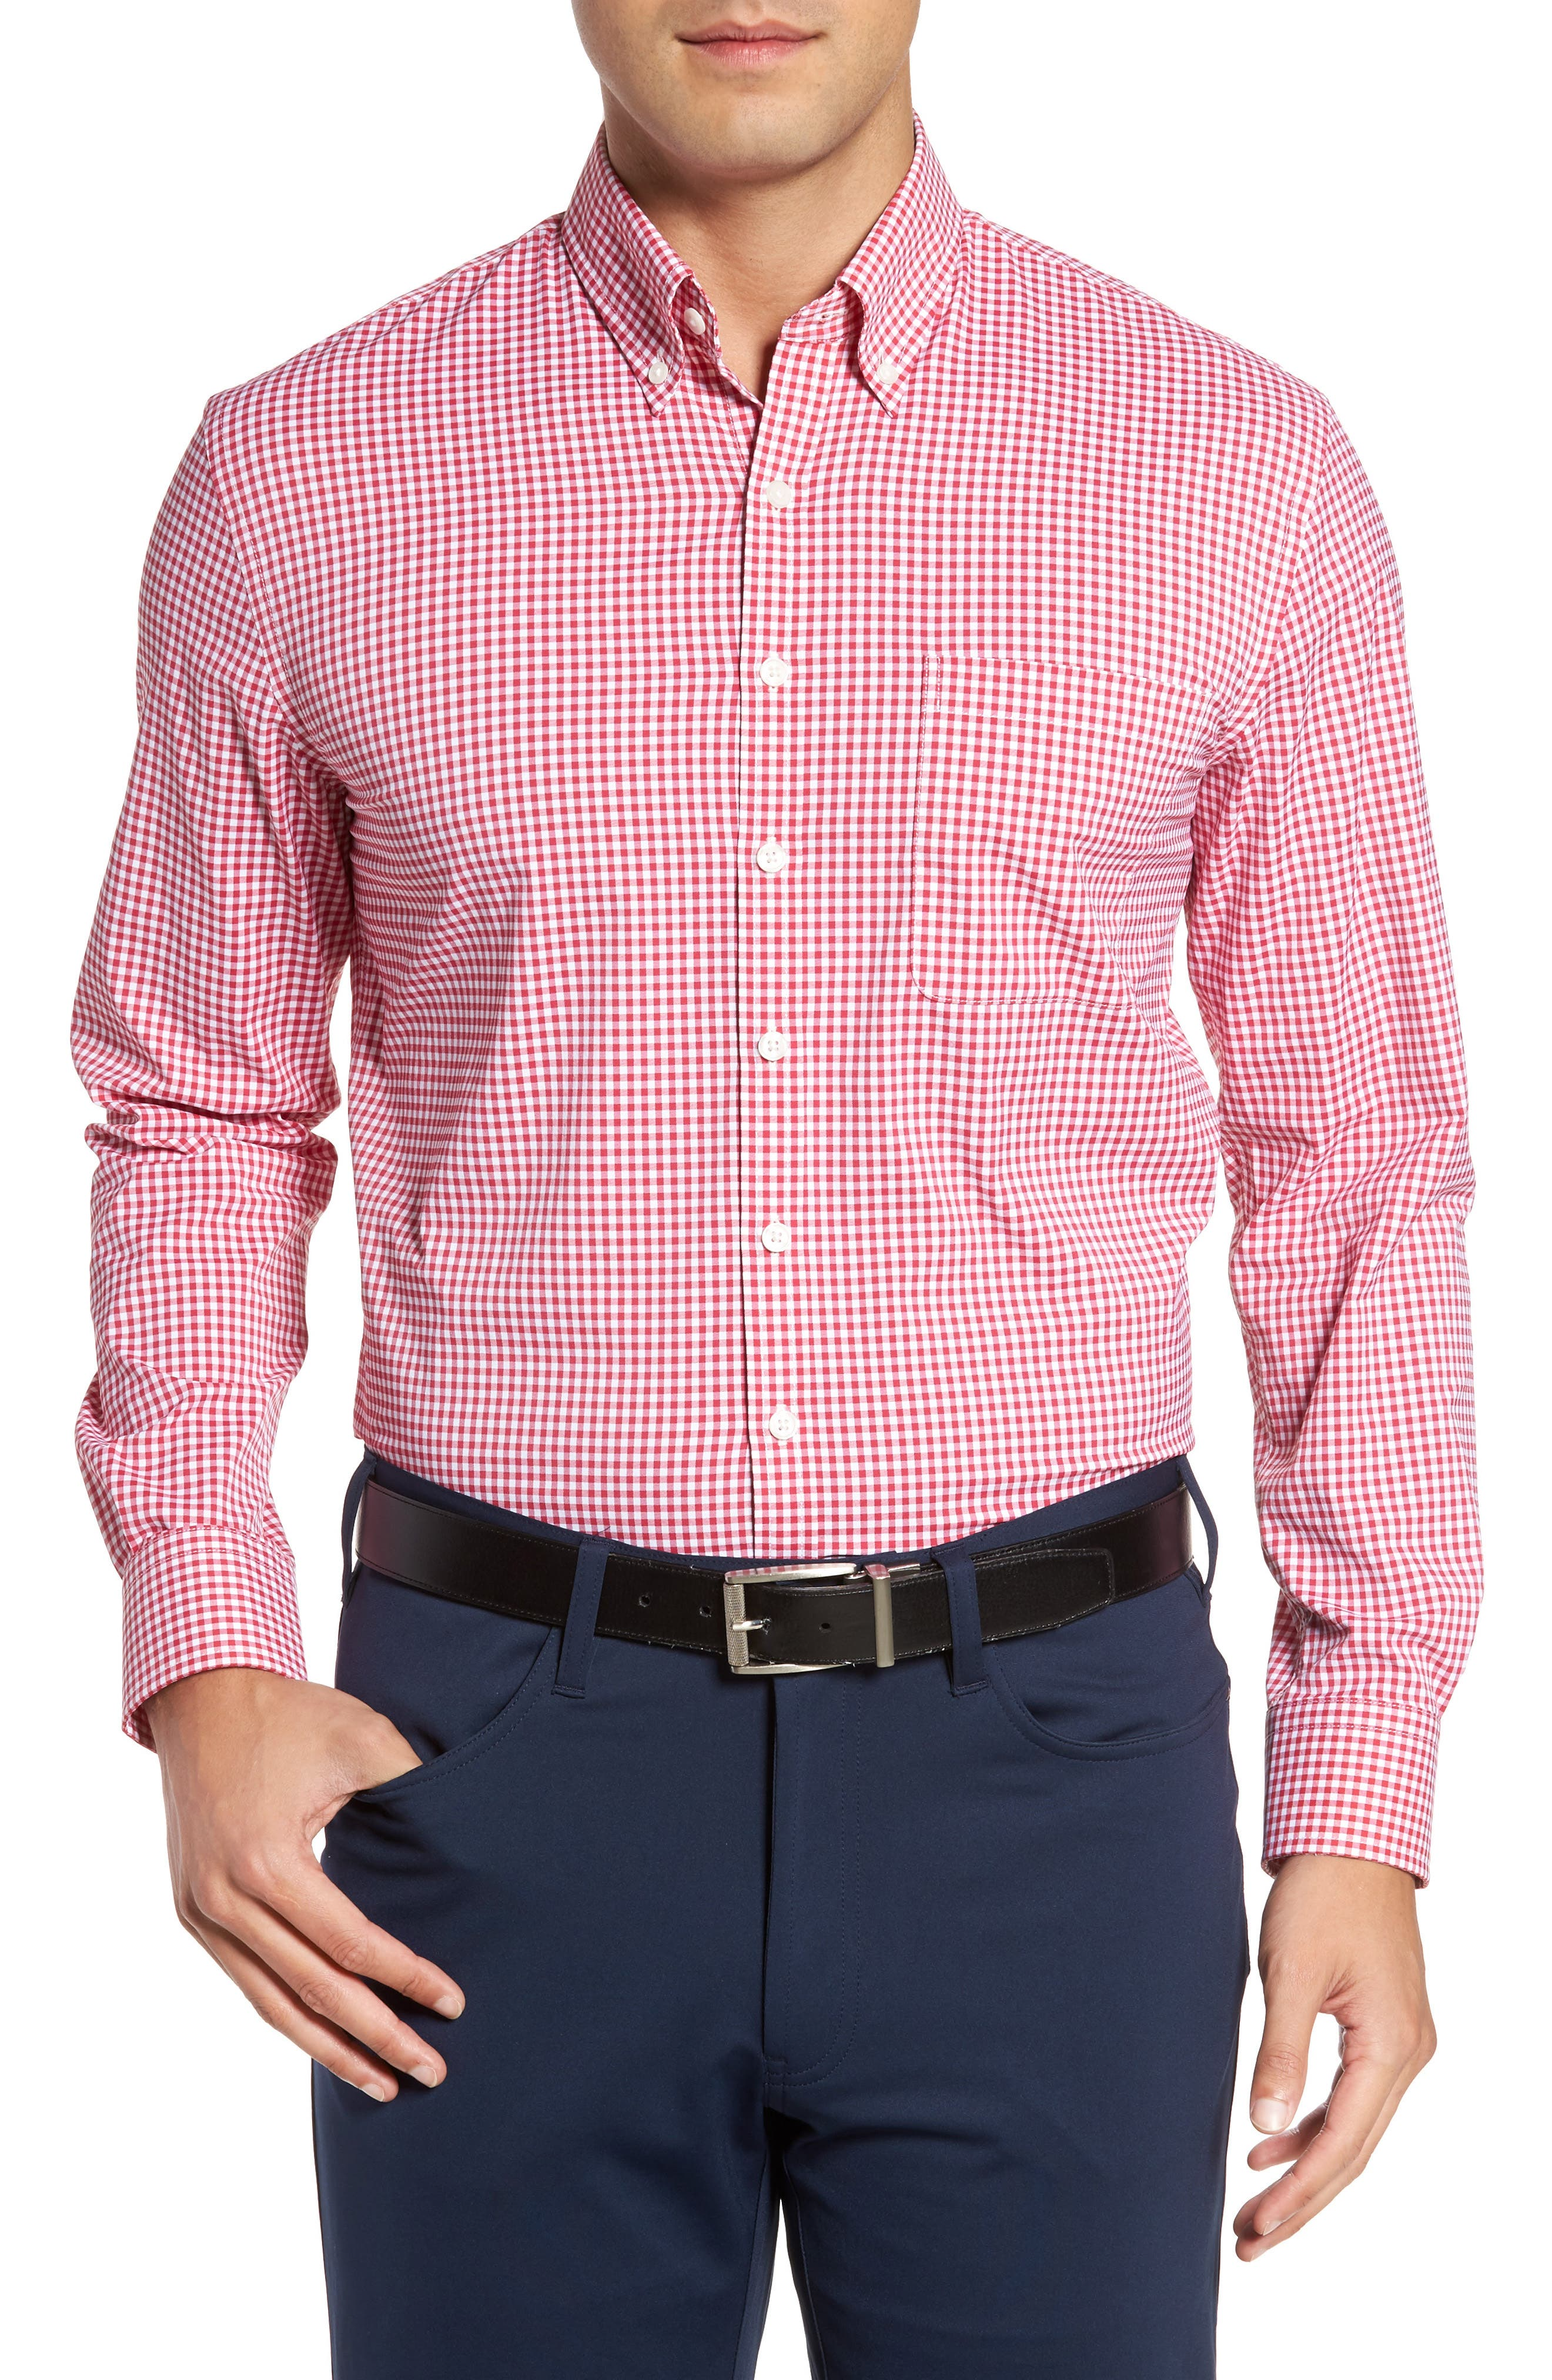 Ramsey Easy Care Gingham Sport Shirt,                             Main thumbnail 1, color,                             Pompei Pink